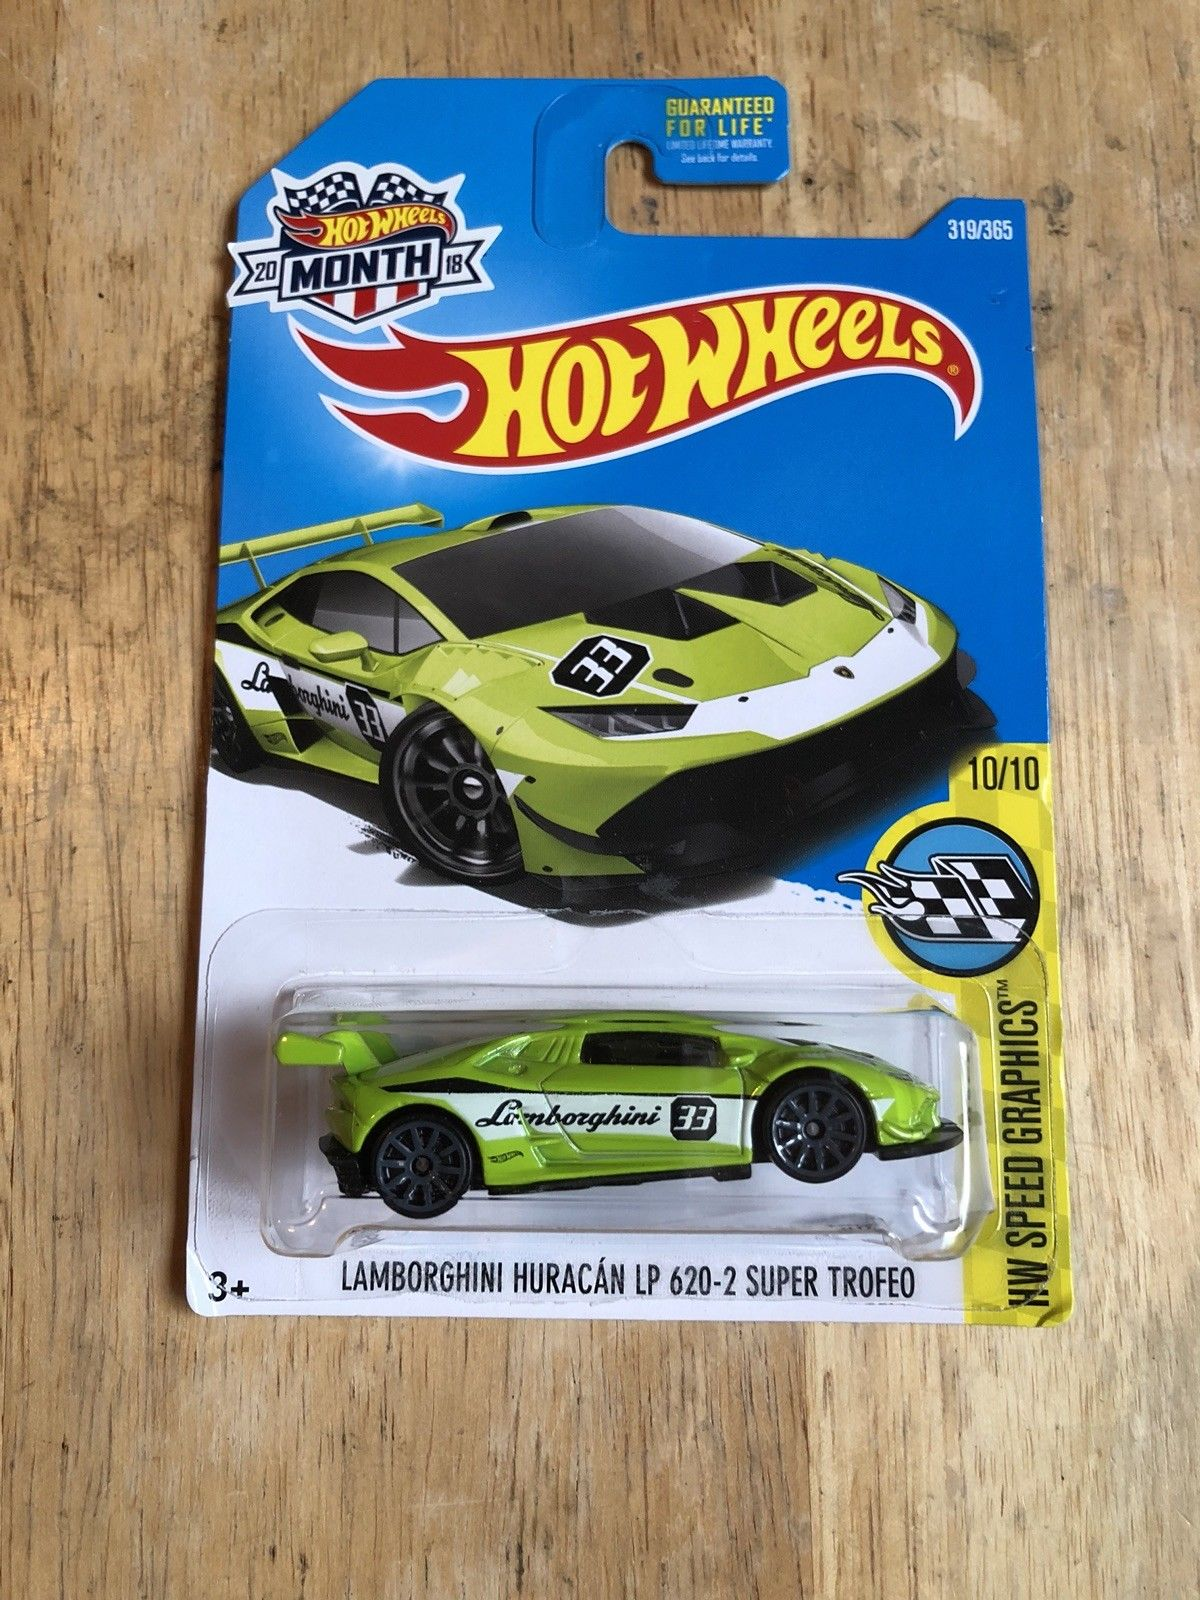 Awesome Hot Wheels 2017 Lamborghini Huracan Lp 620 2 Super Trofeo 2018